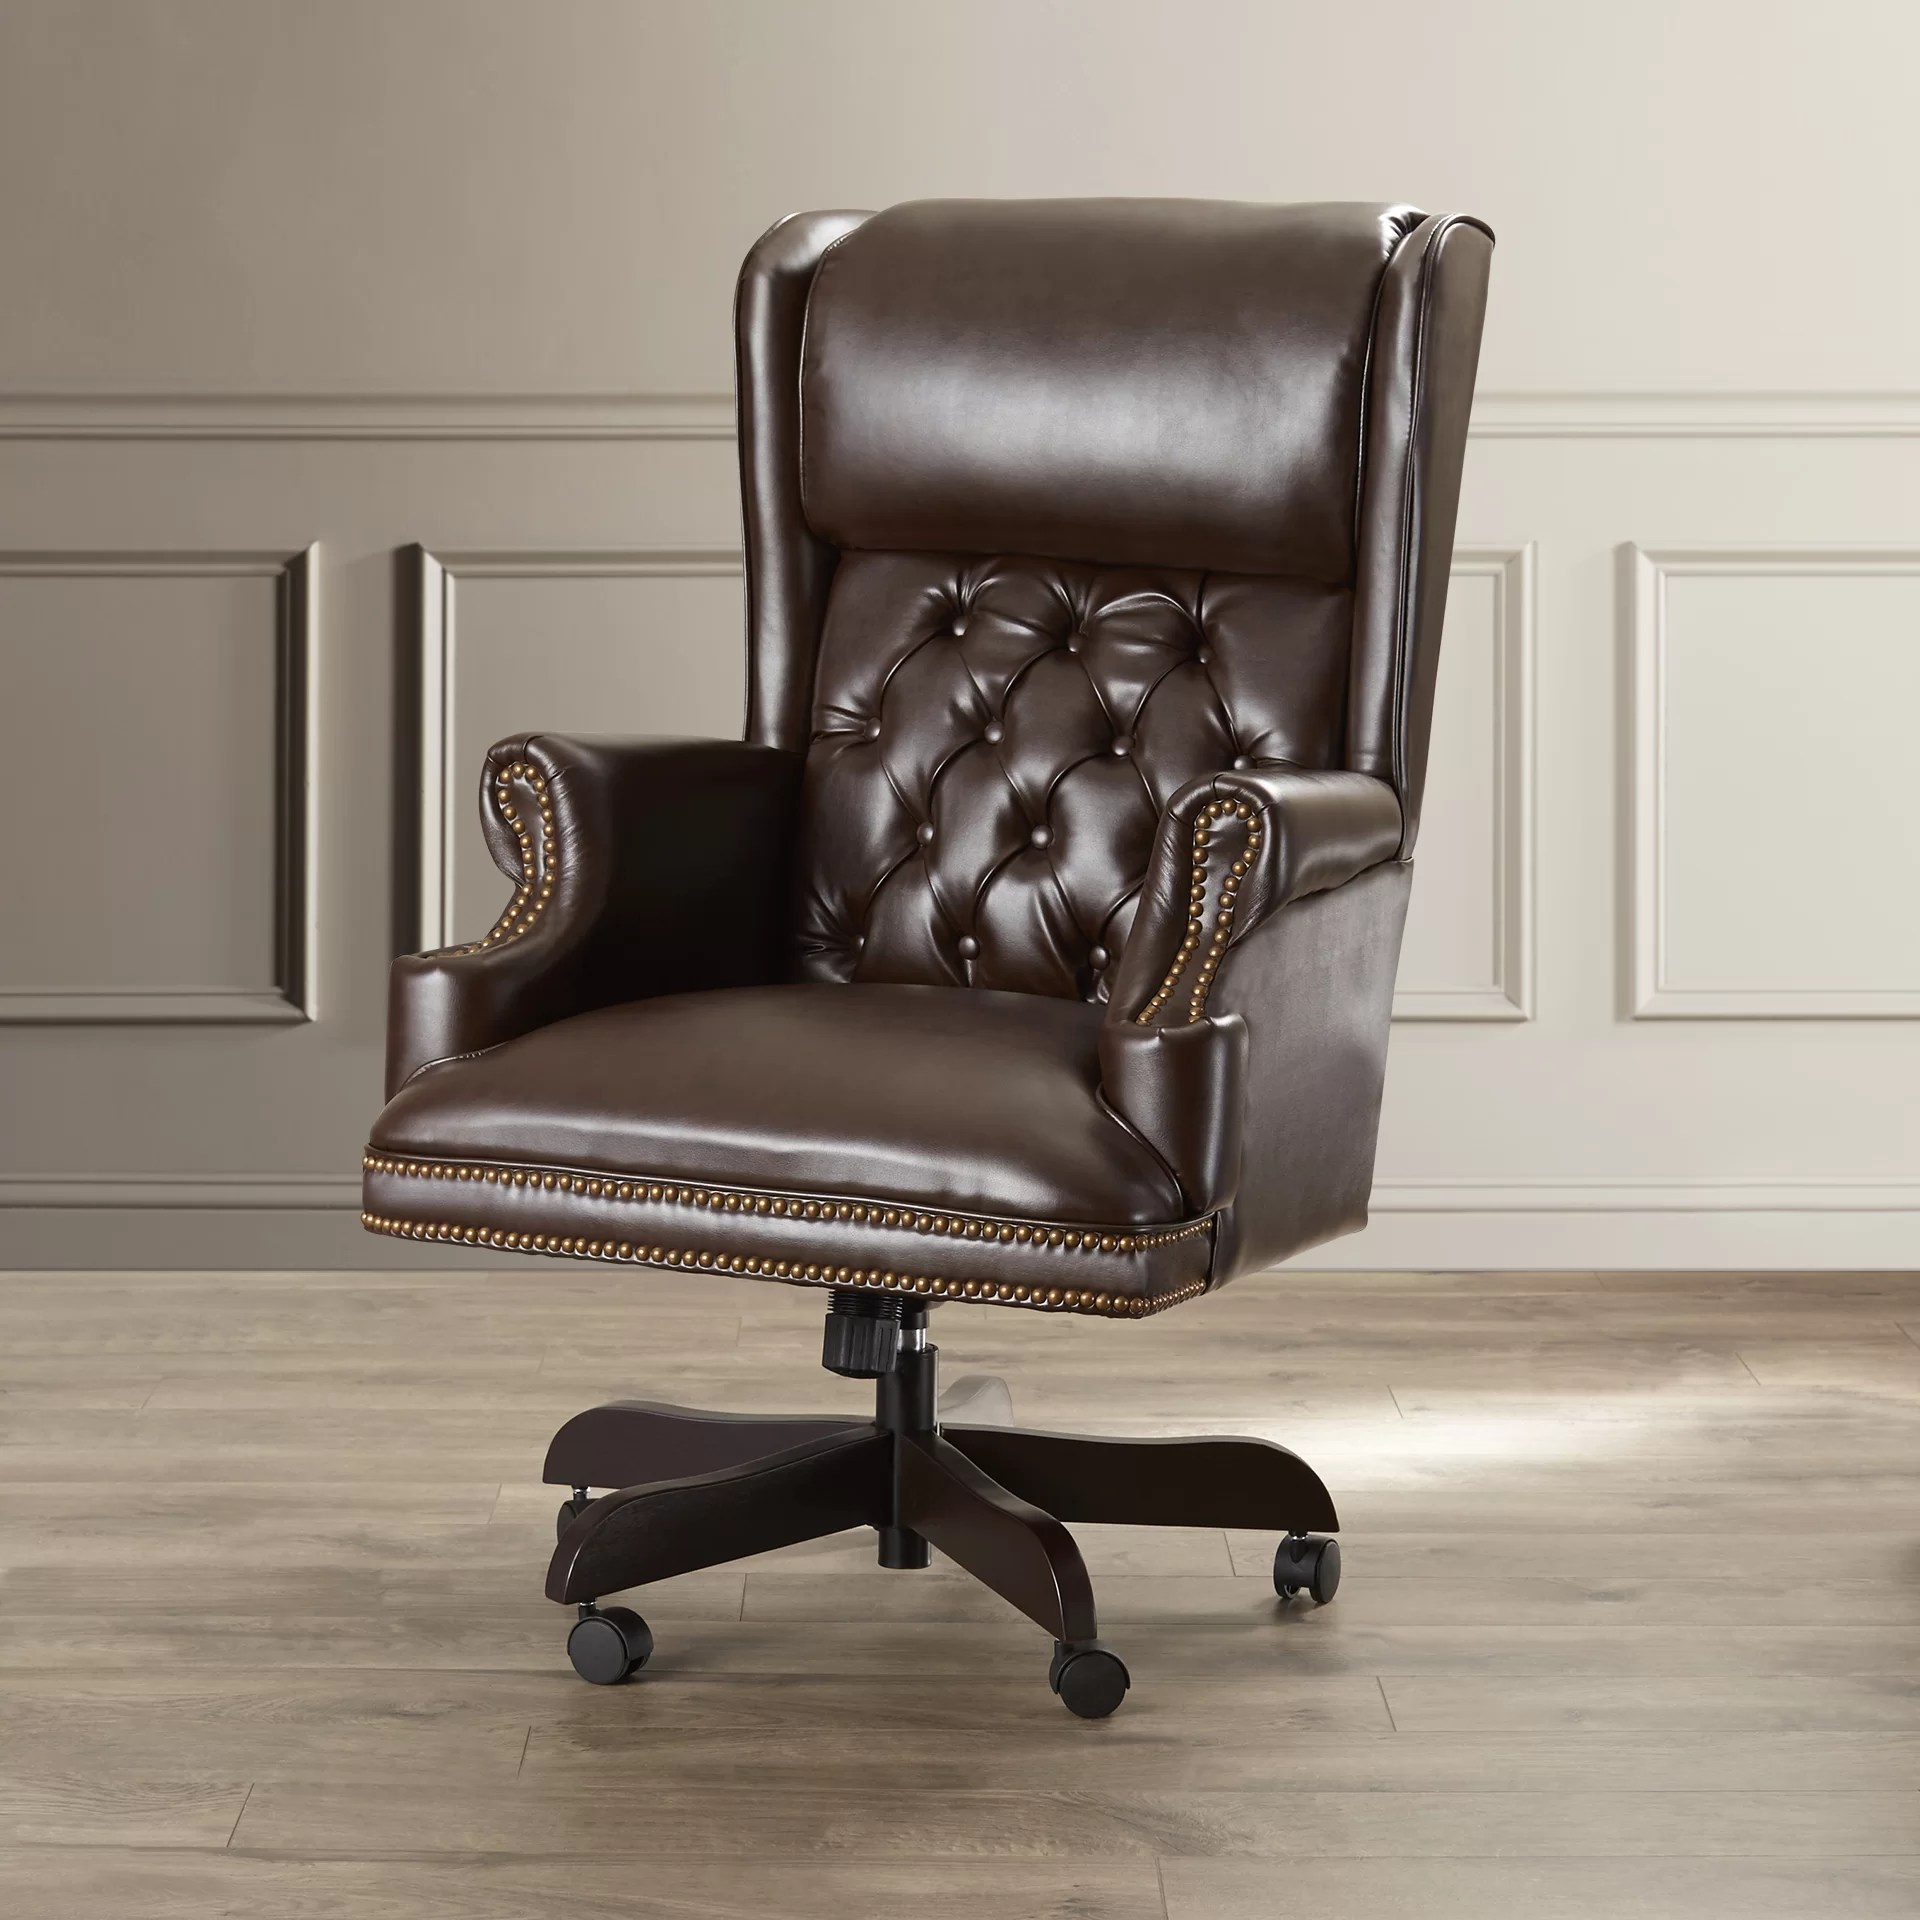 Tufted Leather Office Chair Brassie Executive Chair